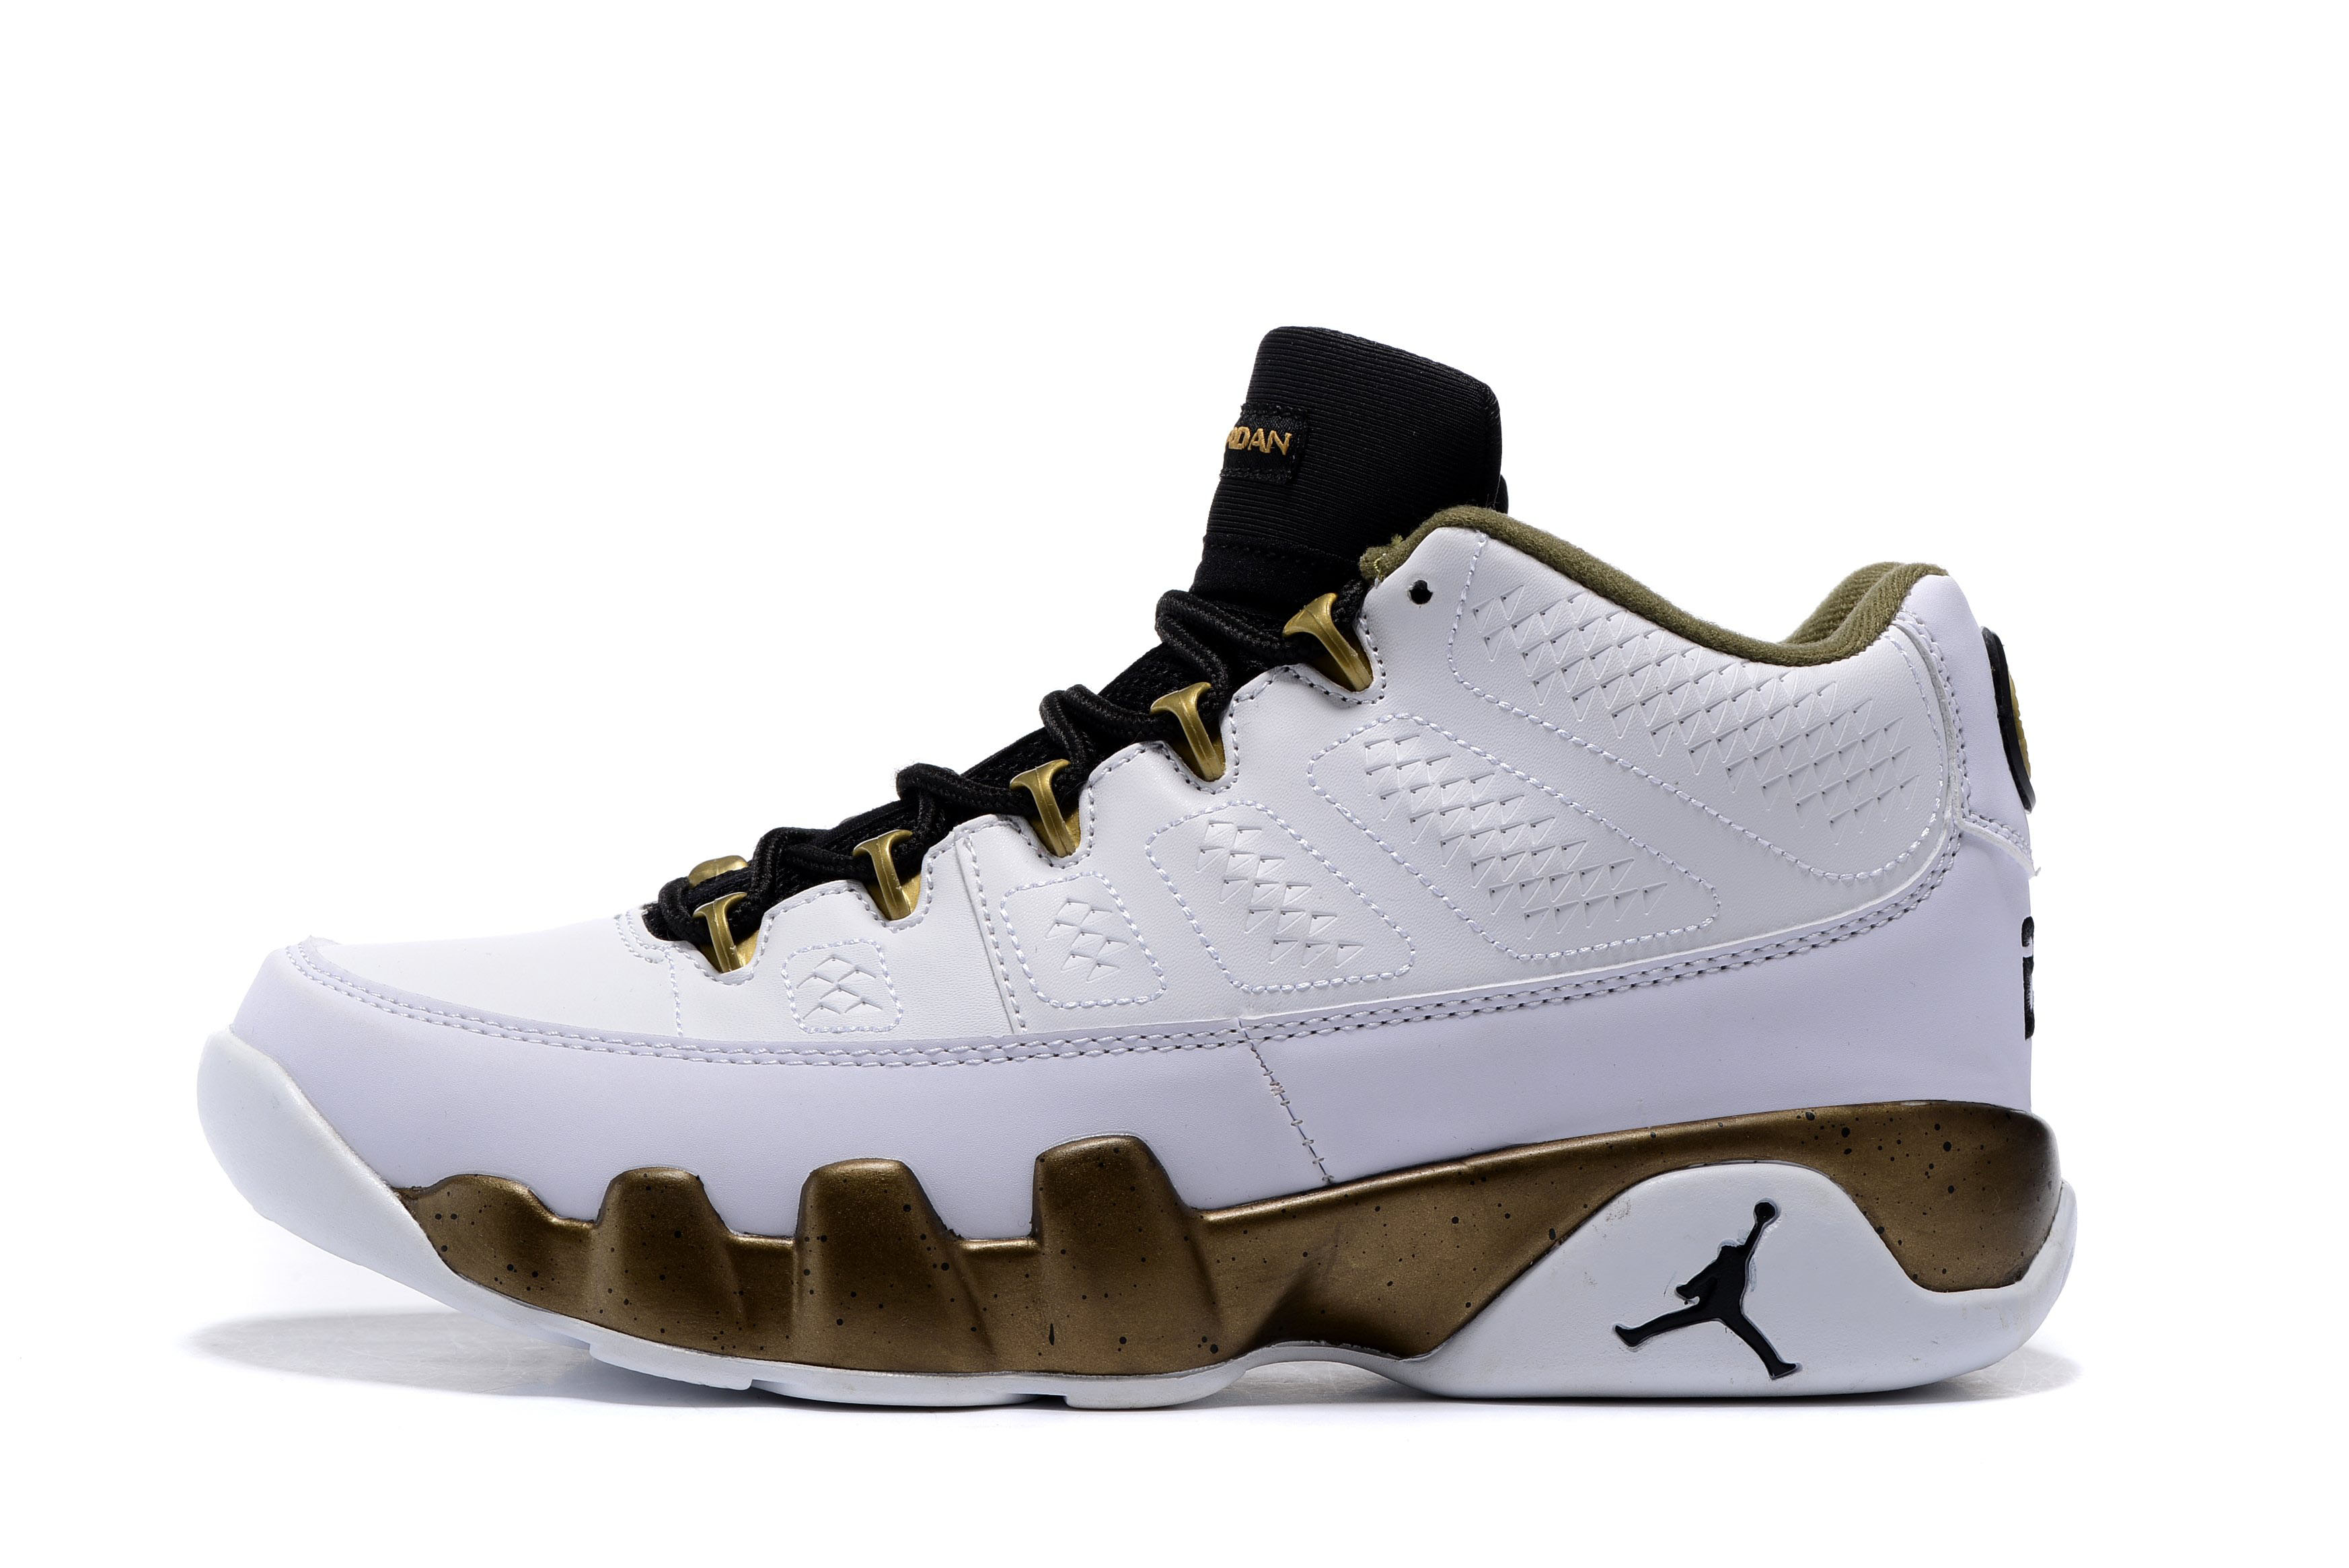 Air Jordan 9 Low Statue White/Black-Militia Green Men's and Women's Size Free Shipping